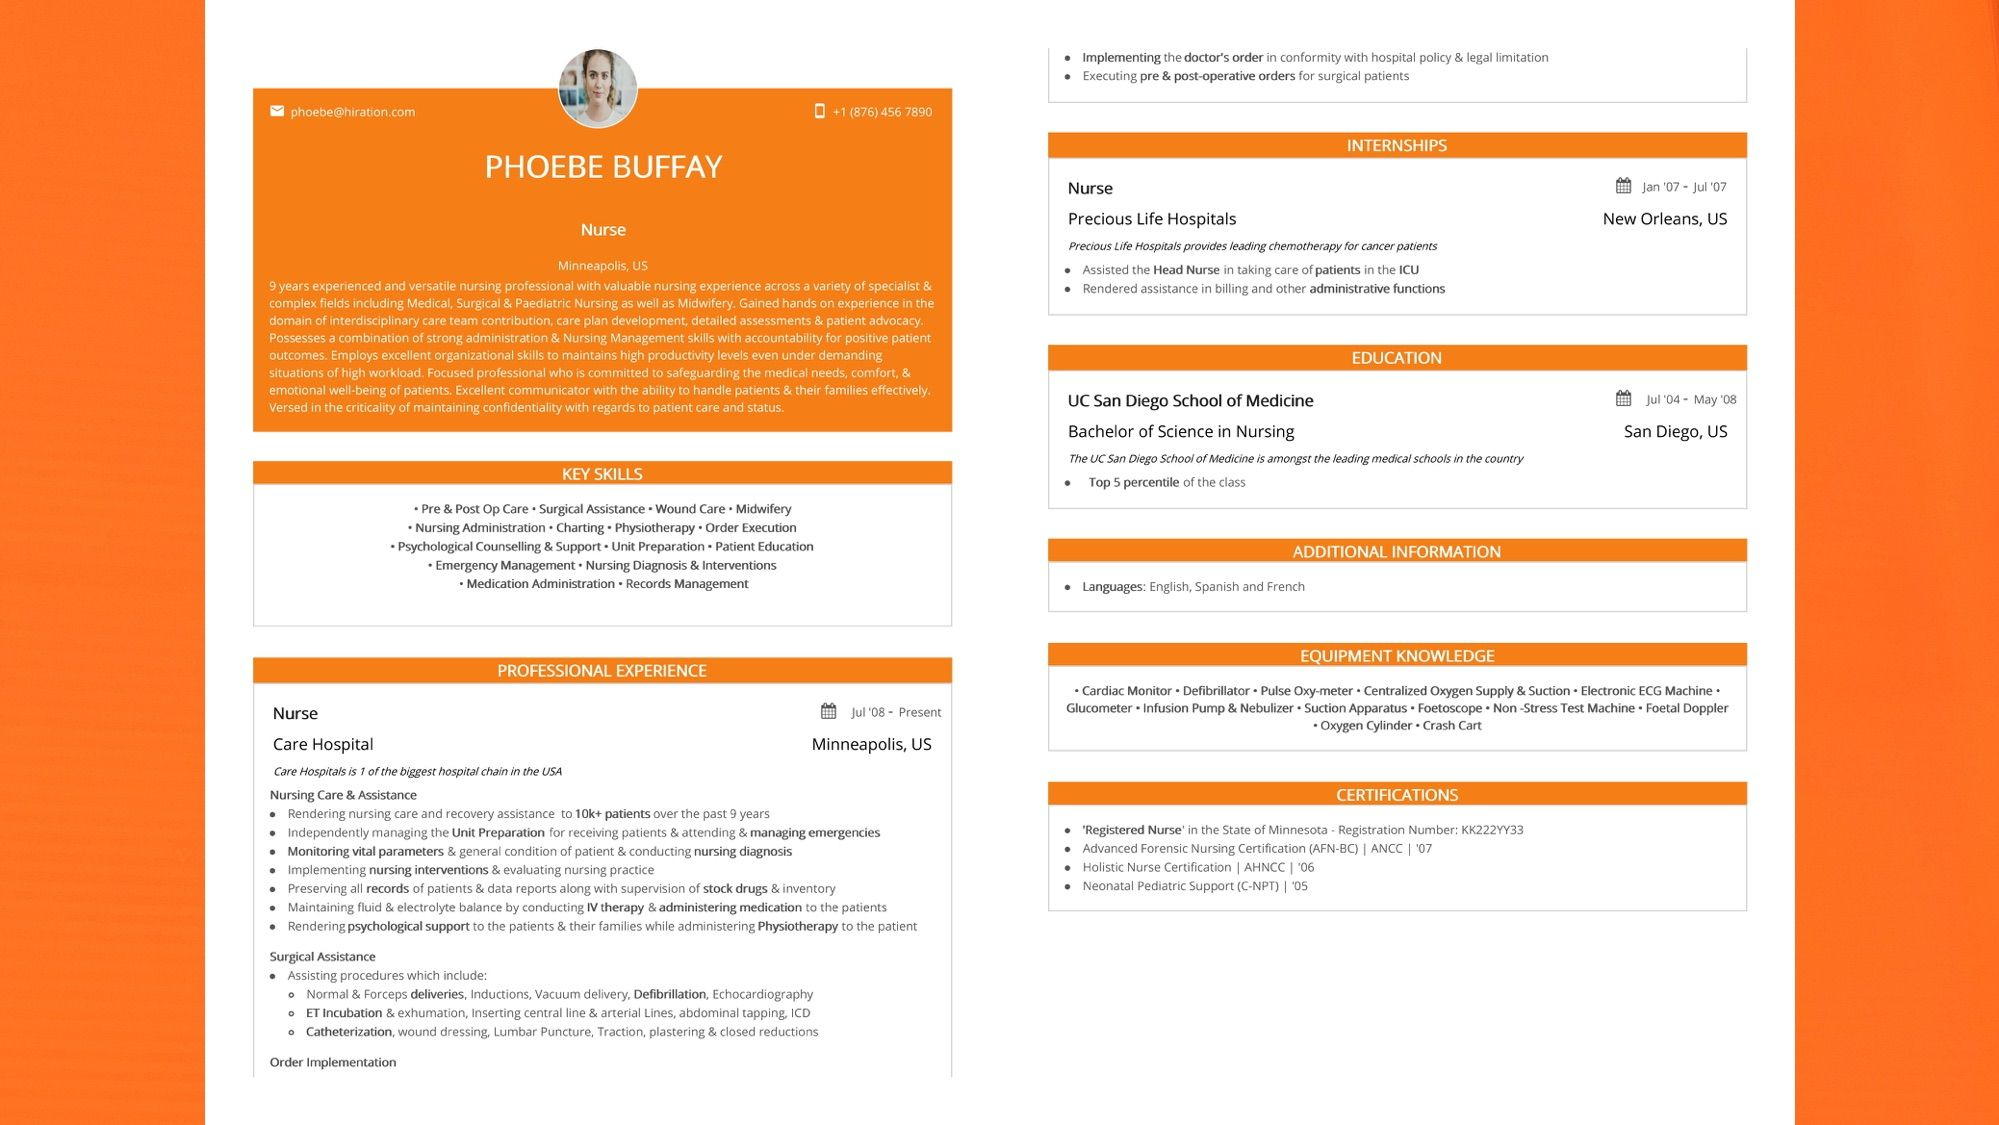 nursing resume guide to resumes samples examples buzzwords cover letter for job reu Resume Nursing Resume Buzzwords